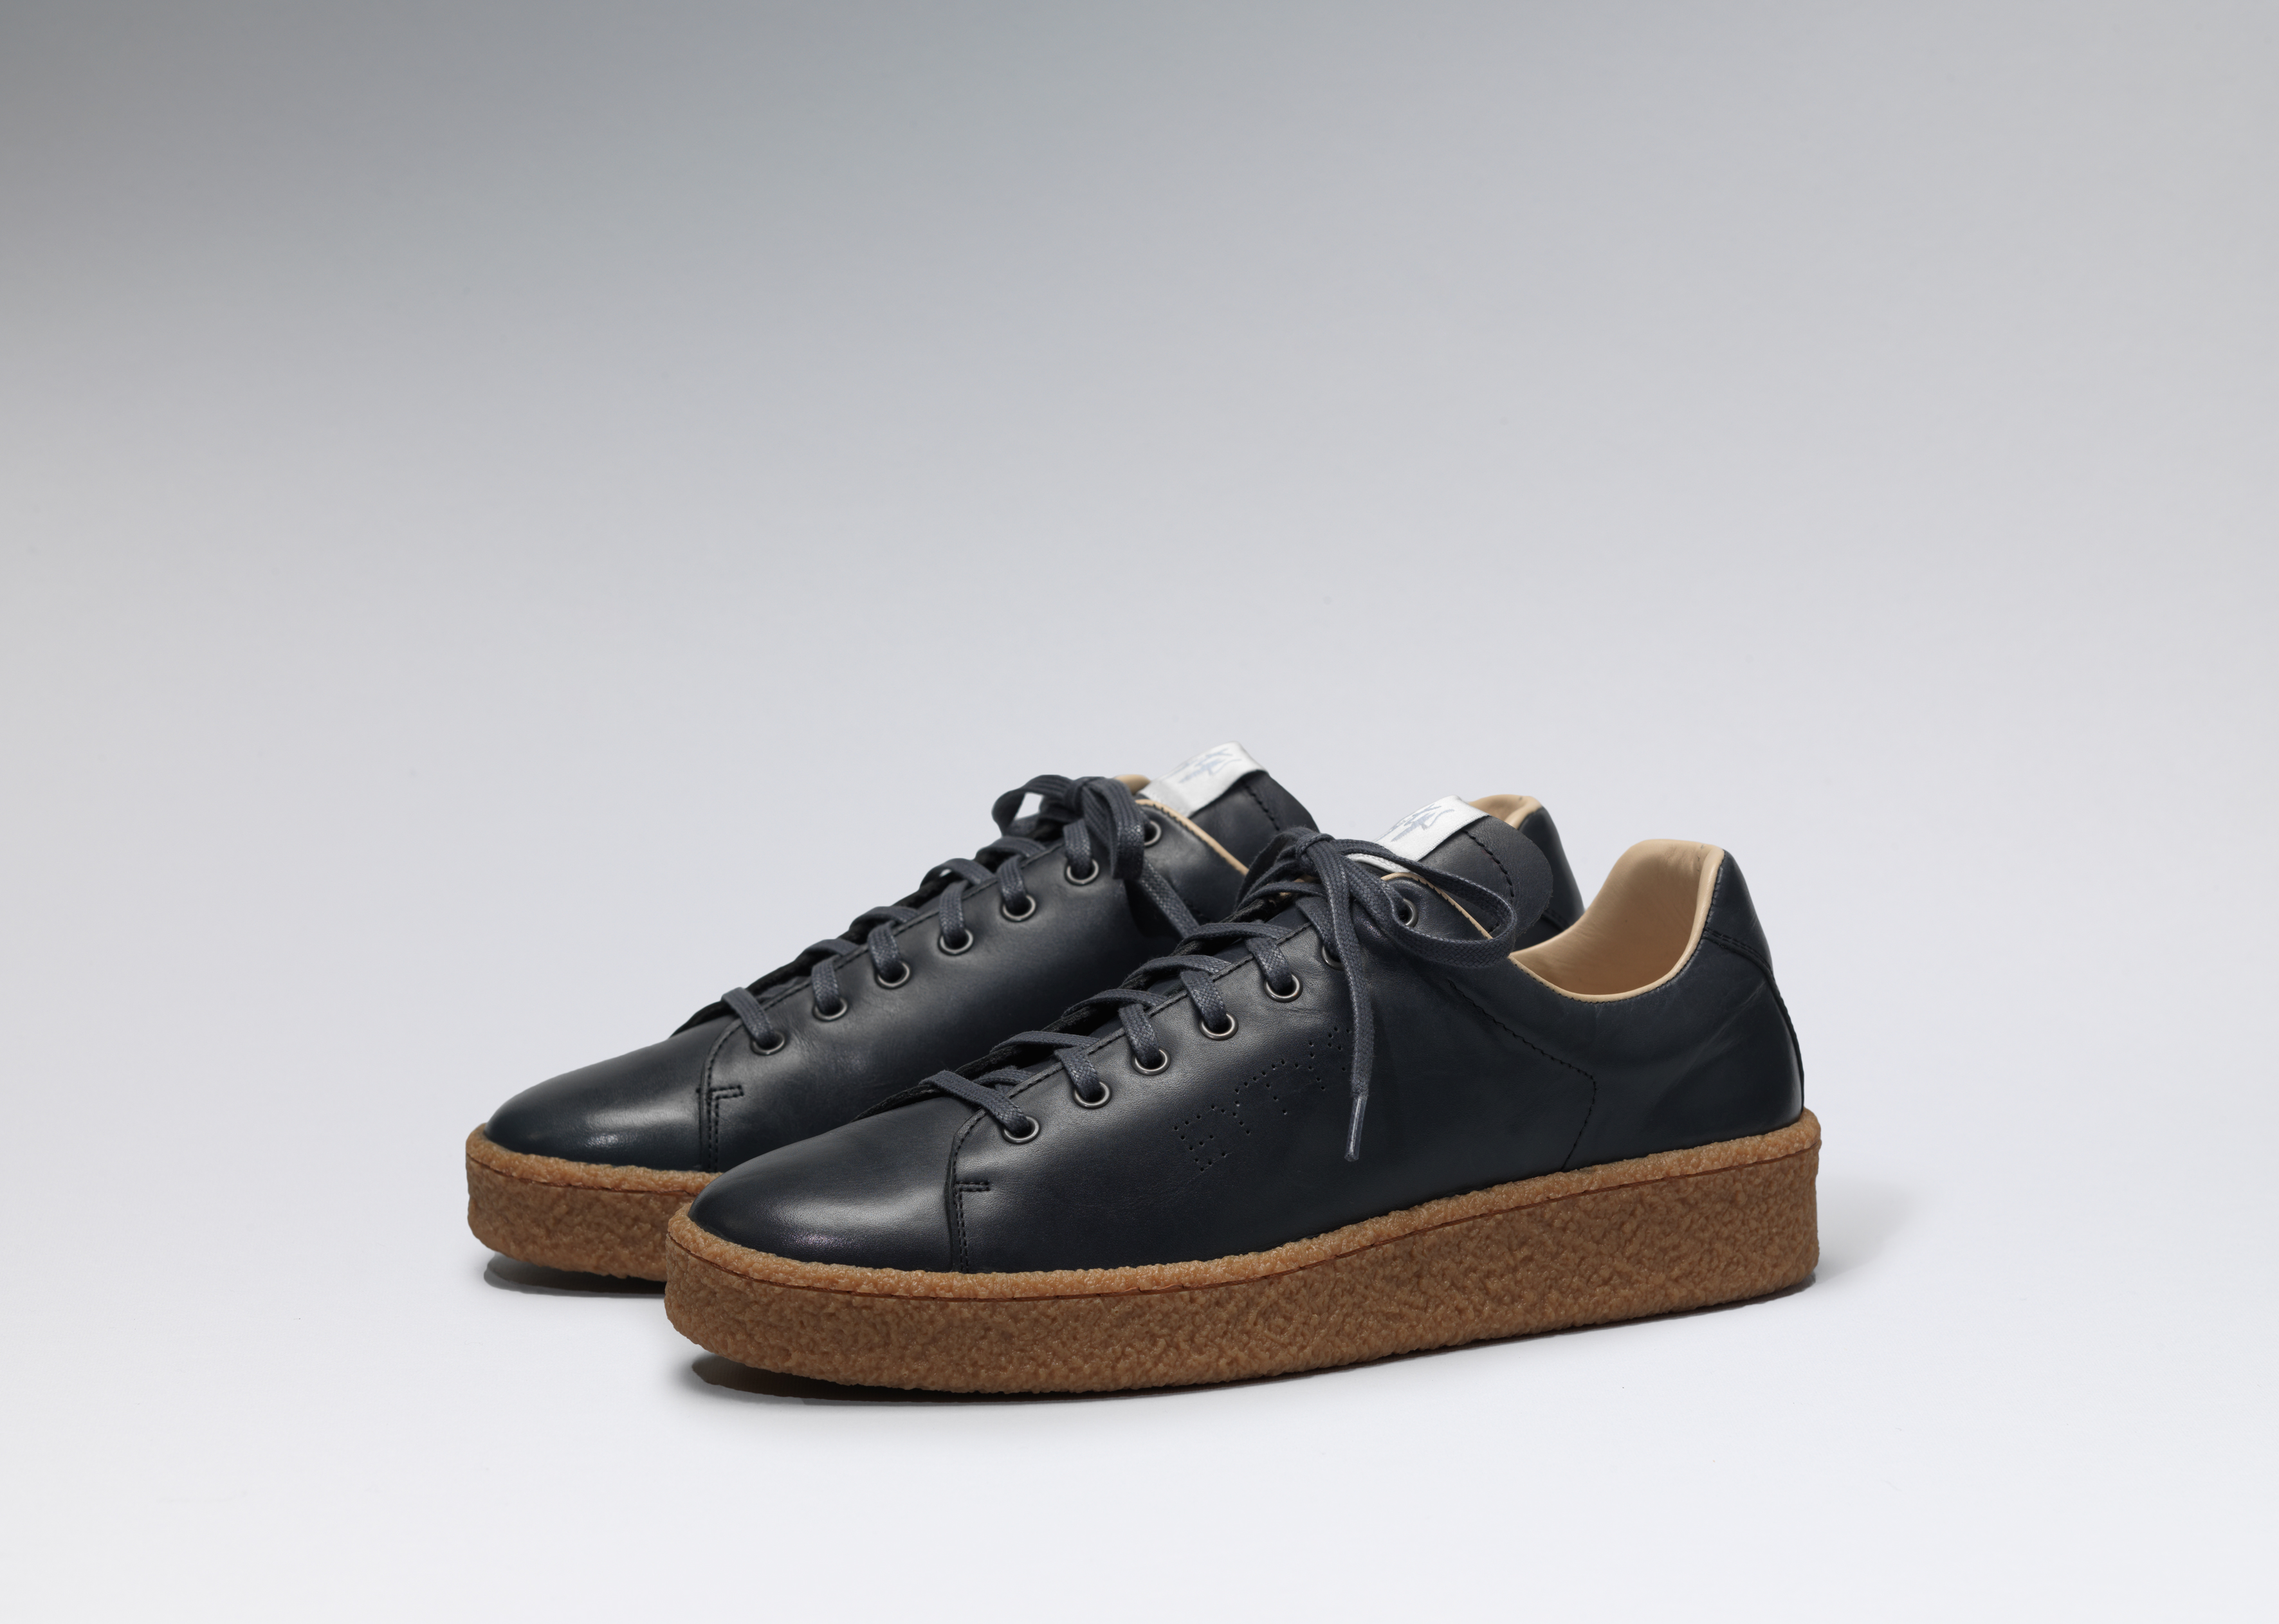 Eytys Ace in dark navy with gum soles.